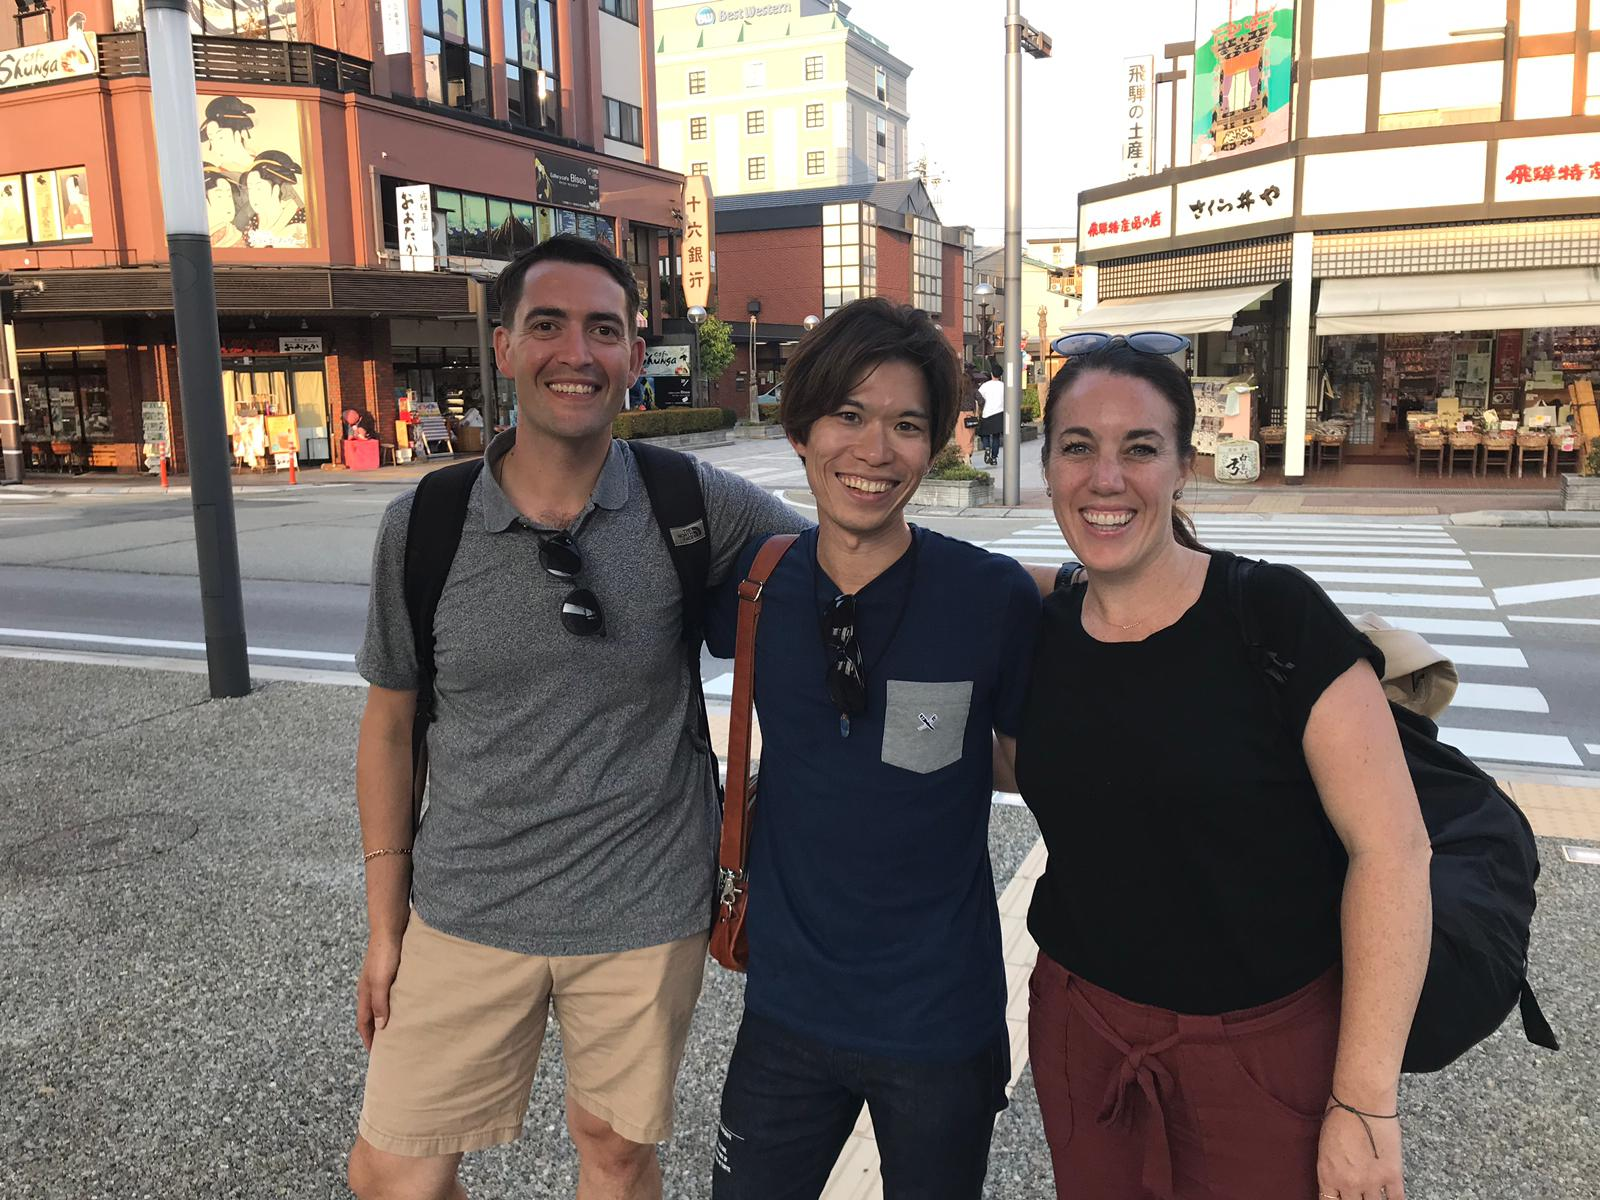 Three friends together on a street in Japan.